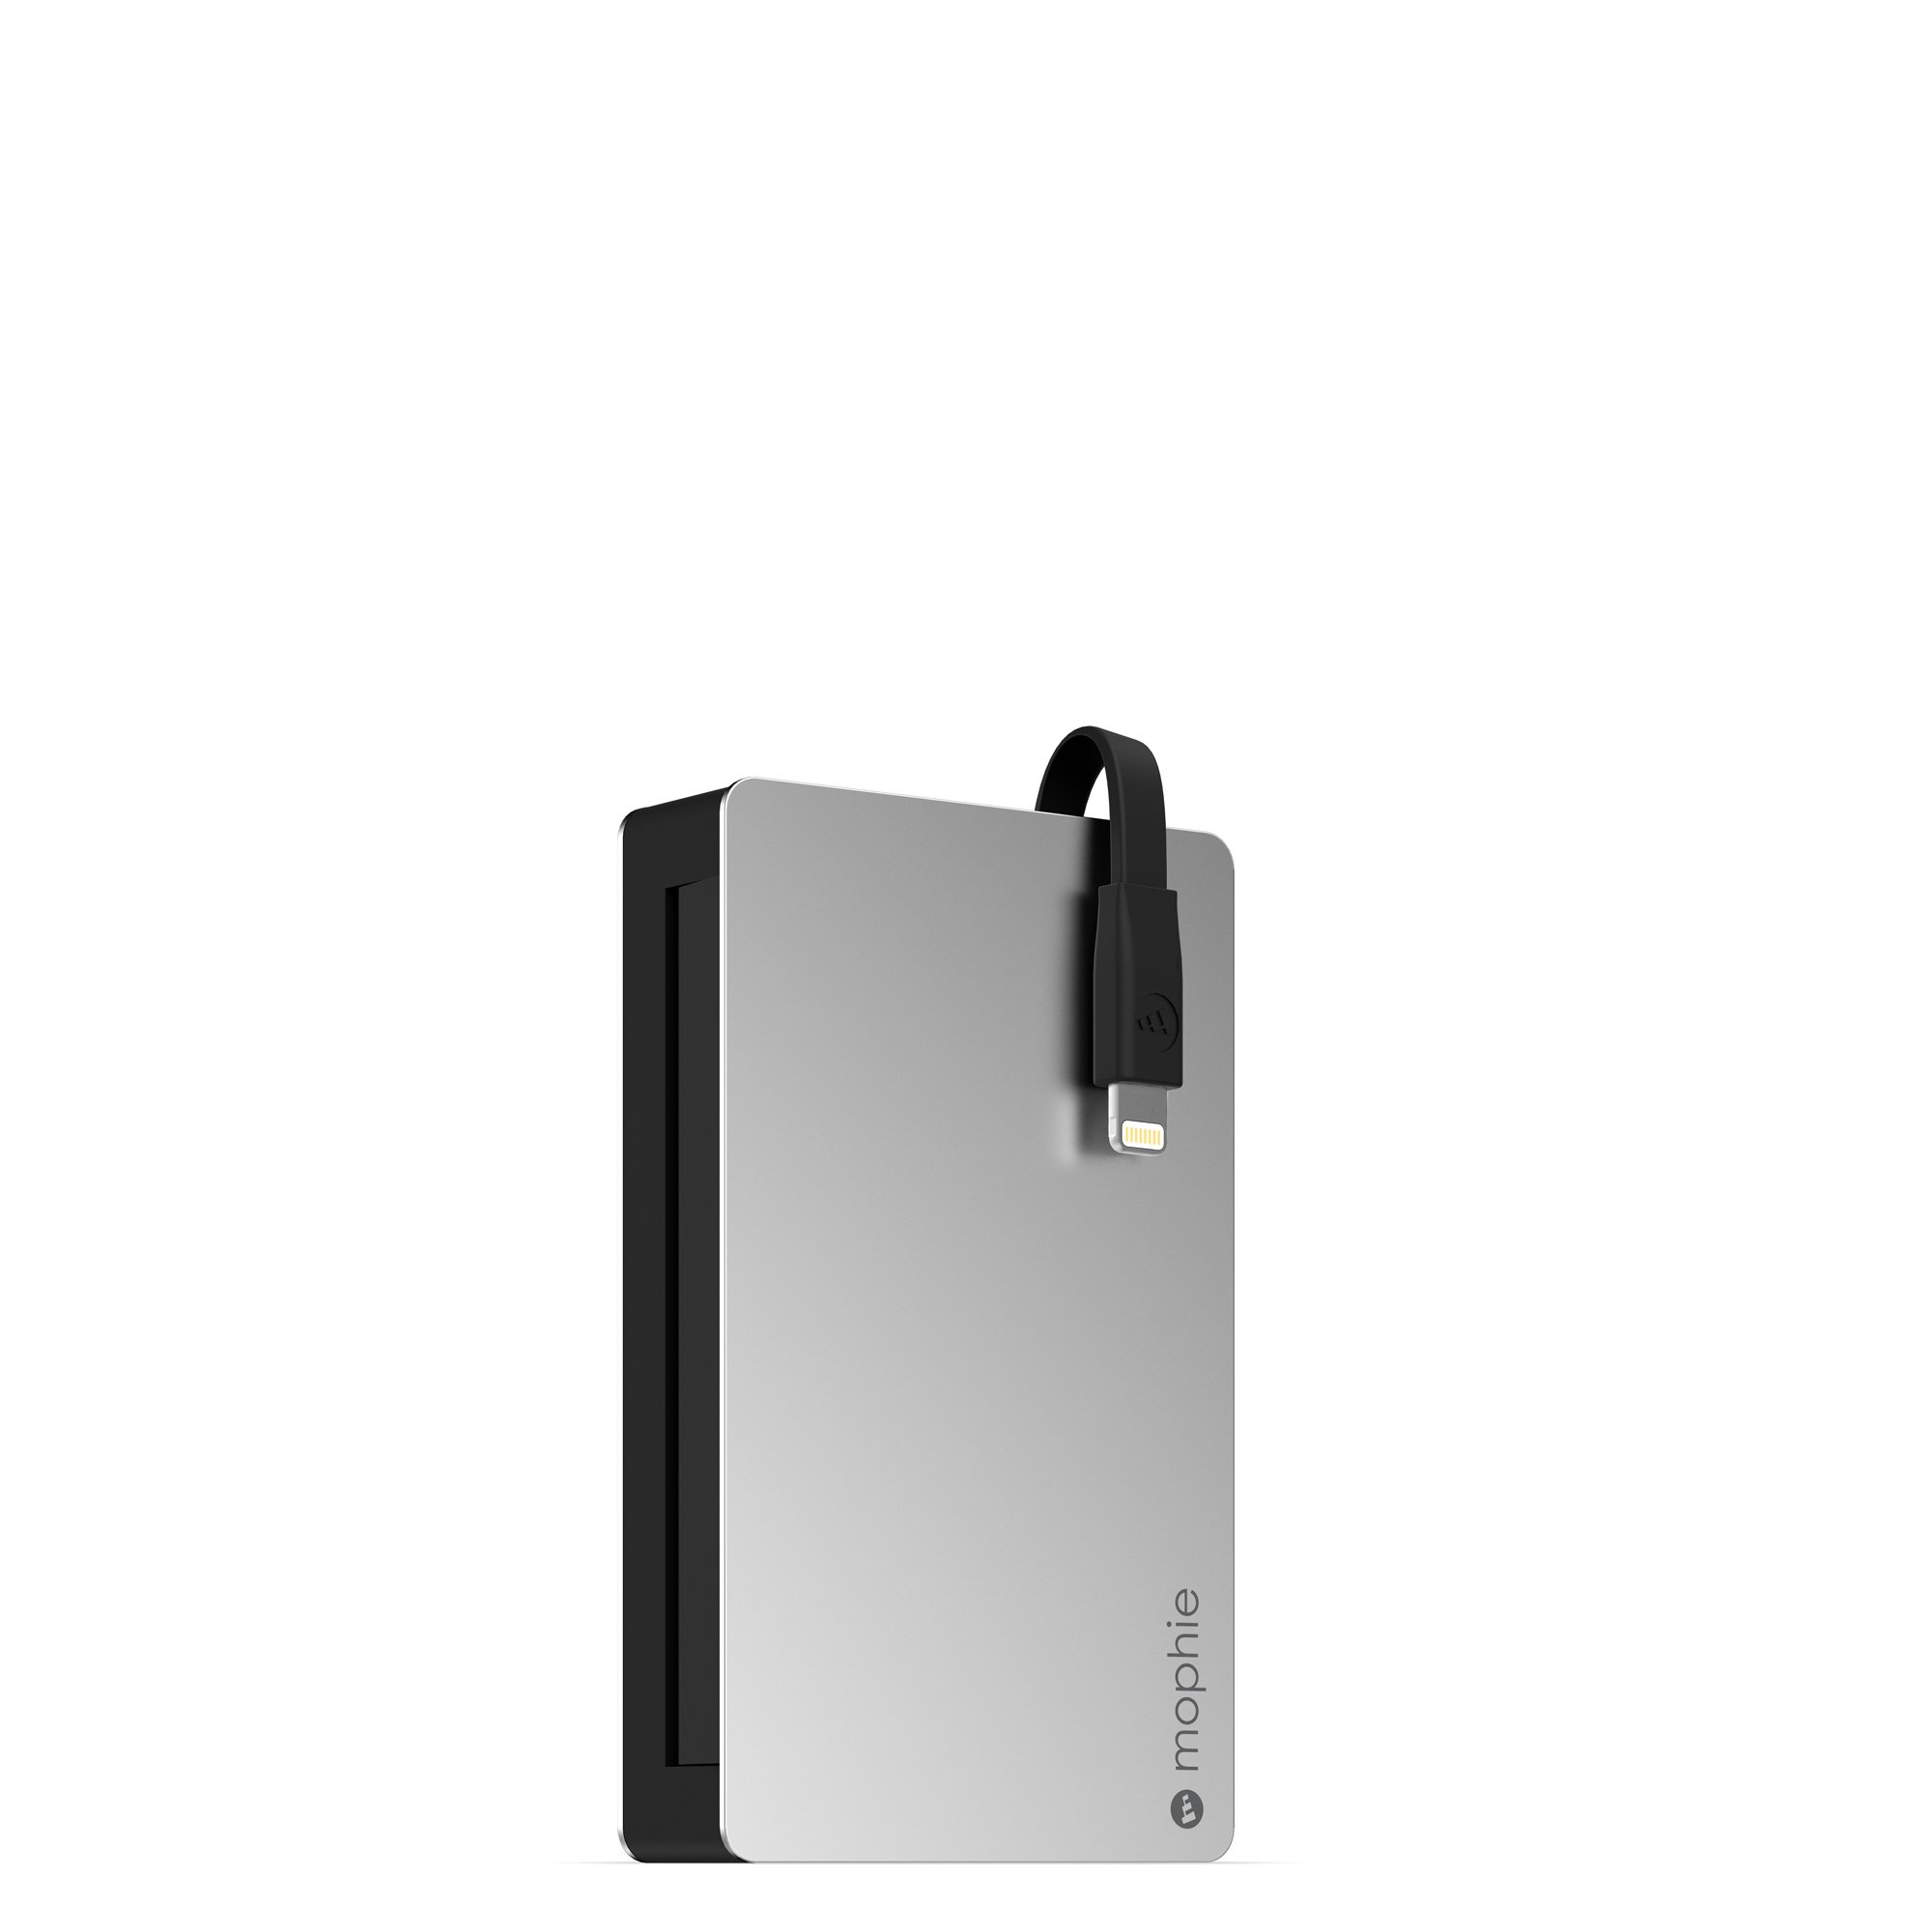 mophie Powerstation Plus 3x with Lightning Connector (5,000 mAh) - Black